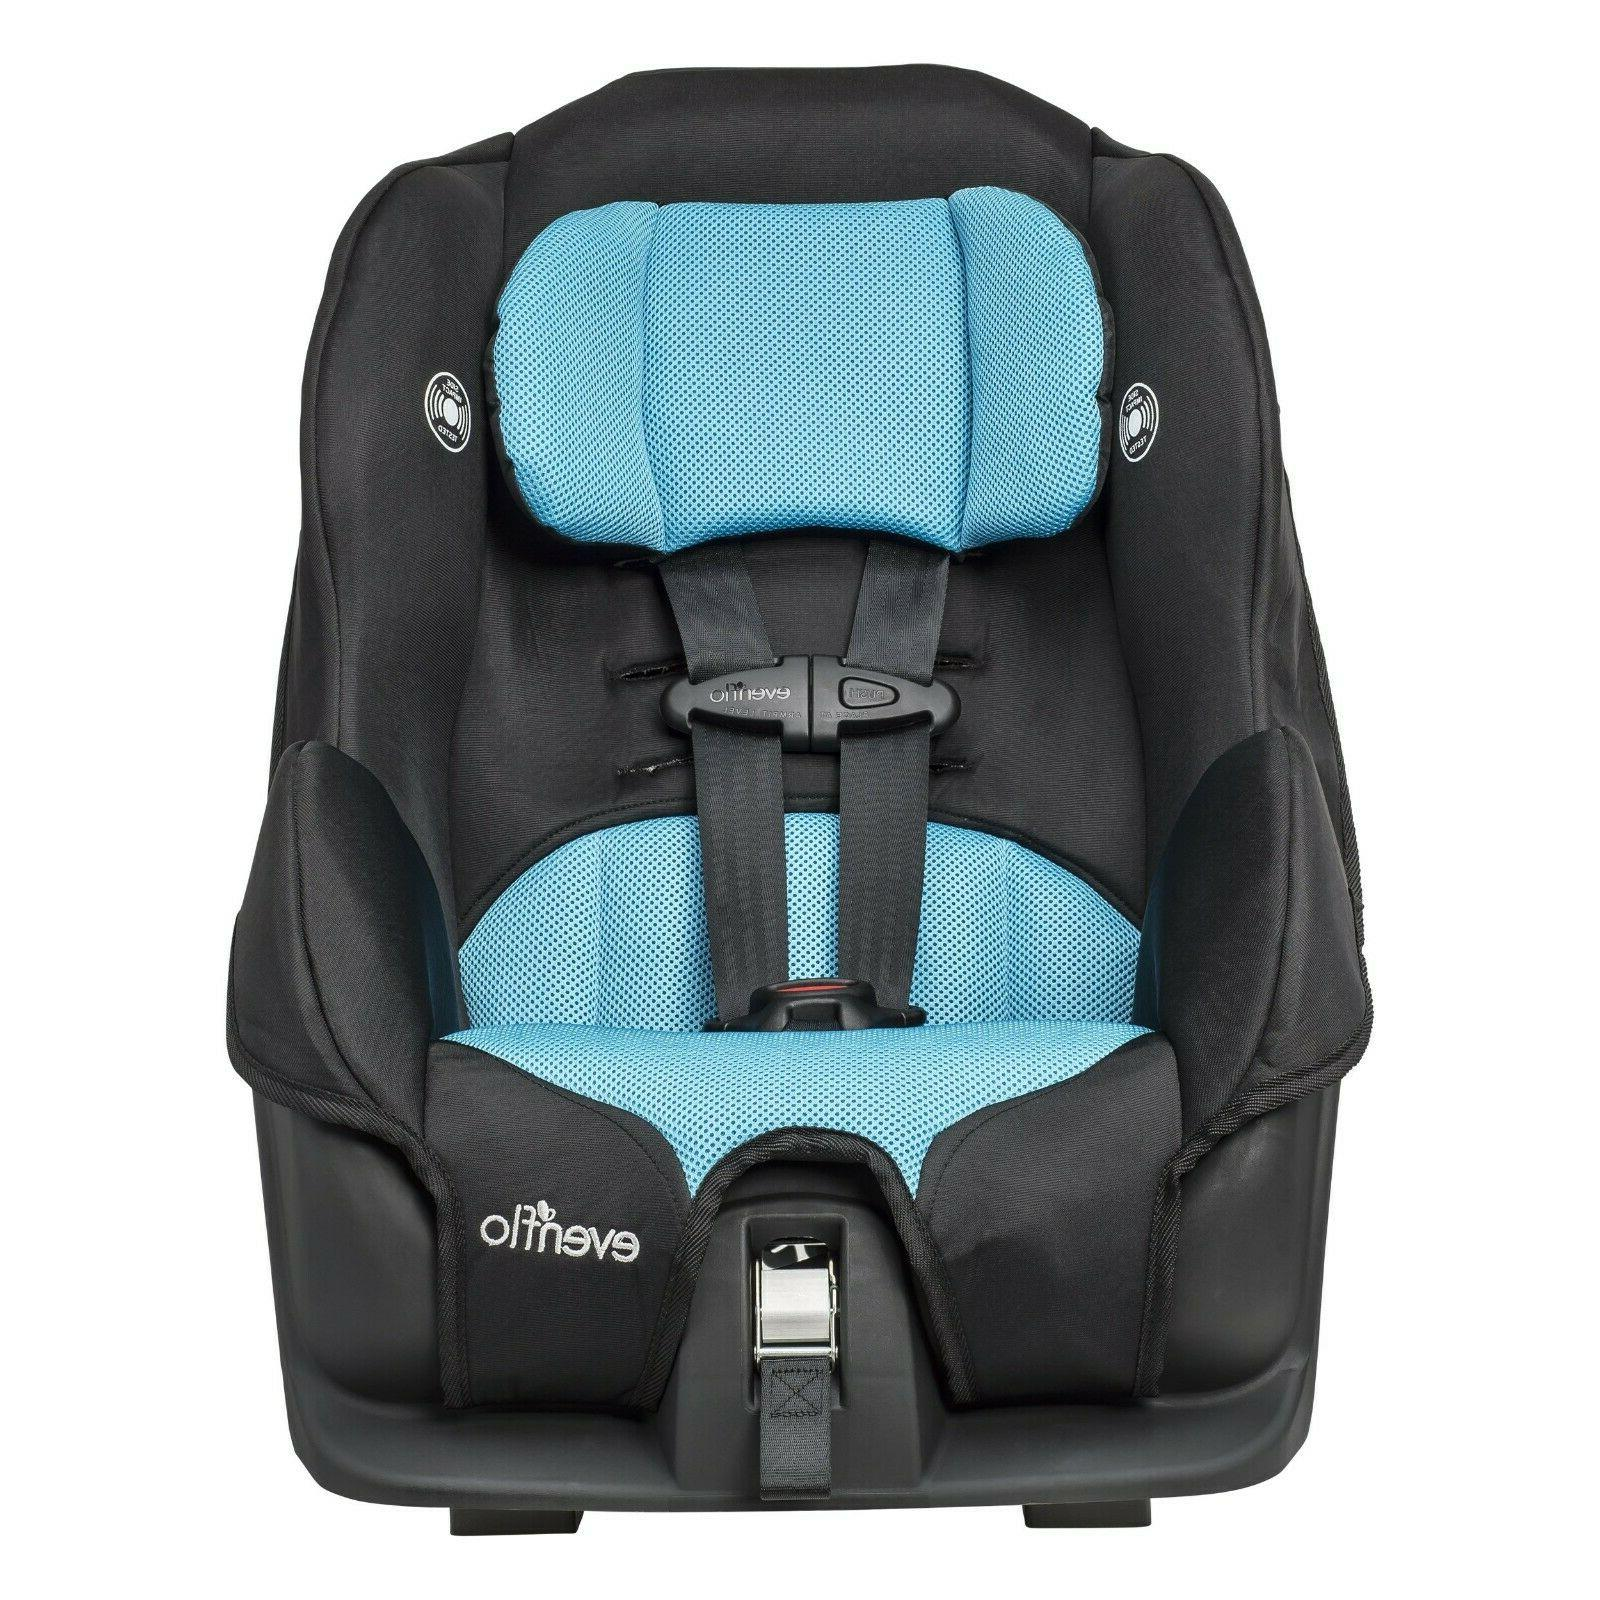 new tribute lx convertible car seat neptune